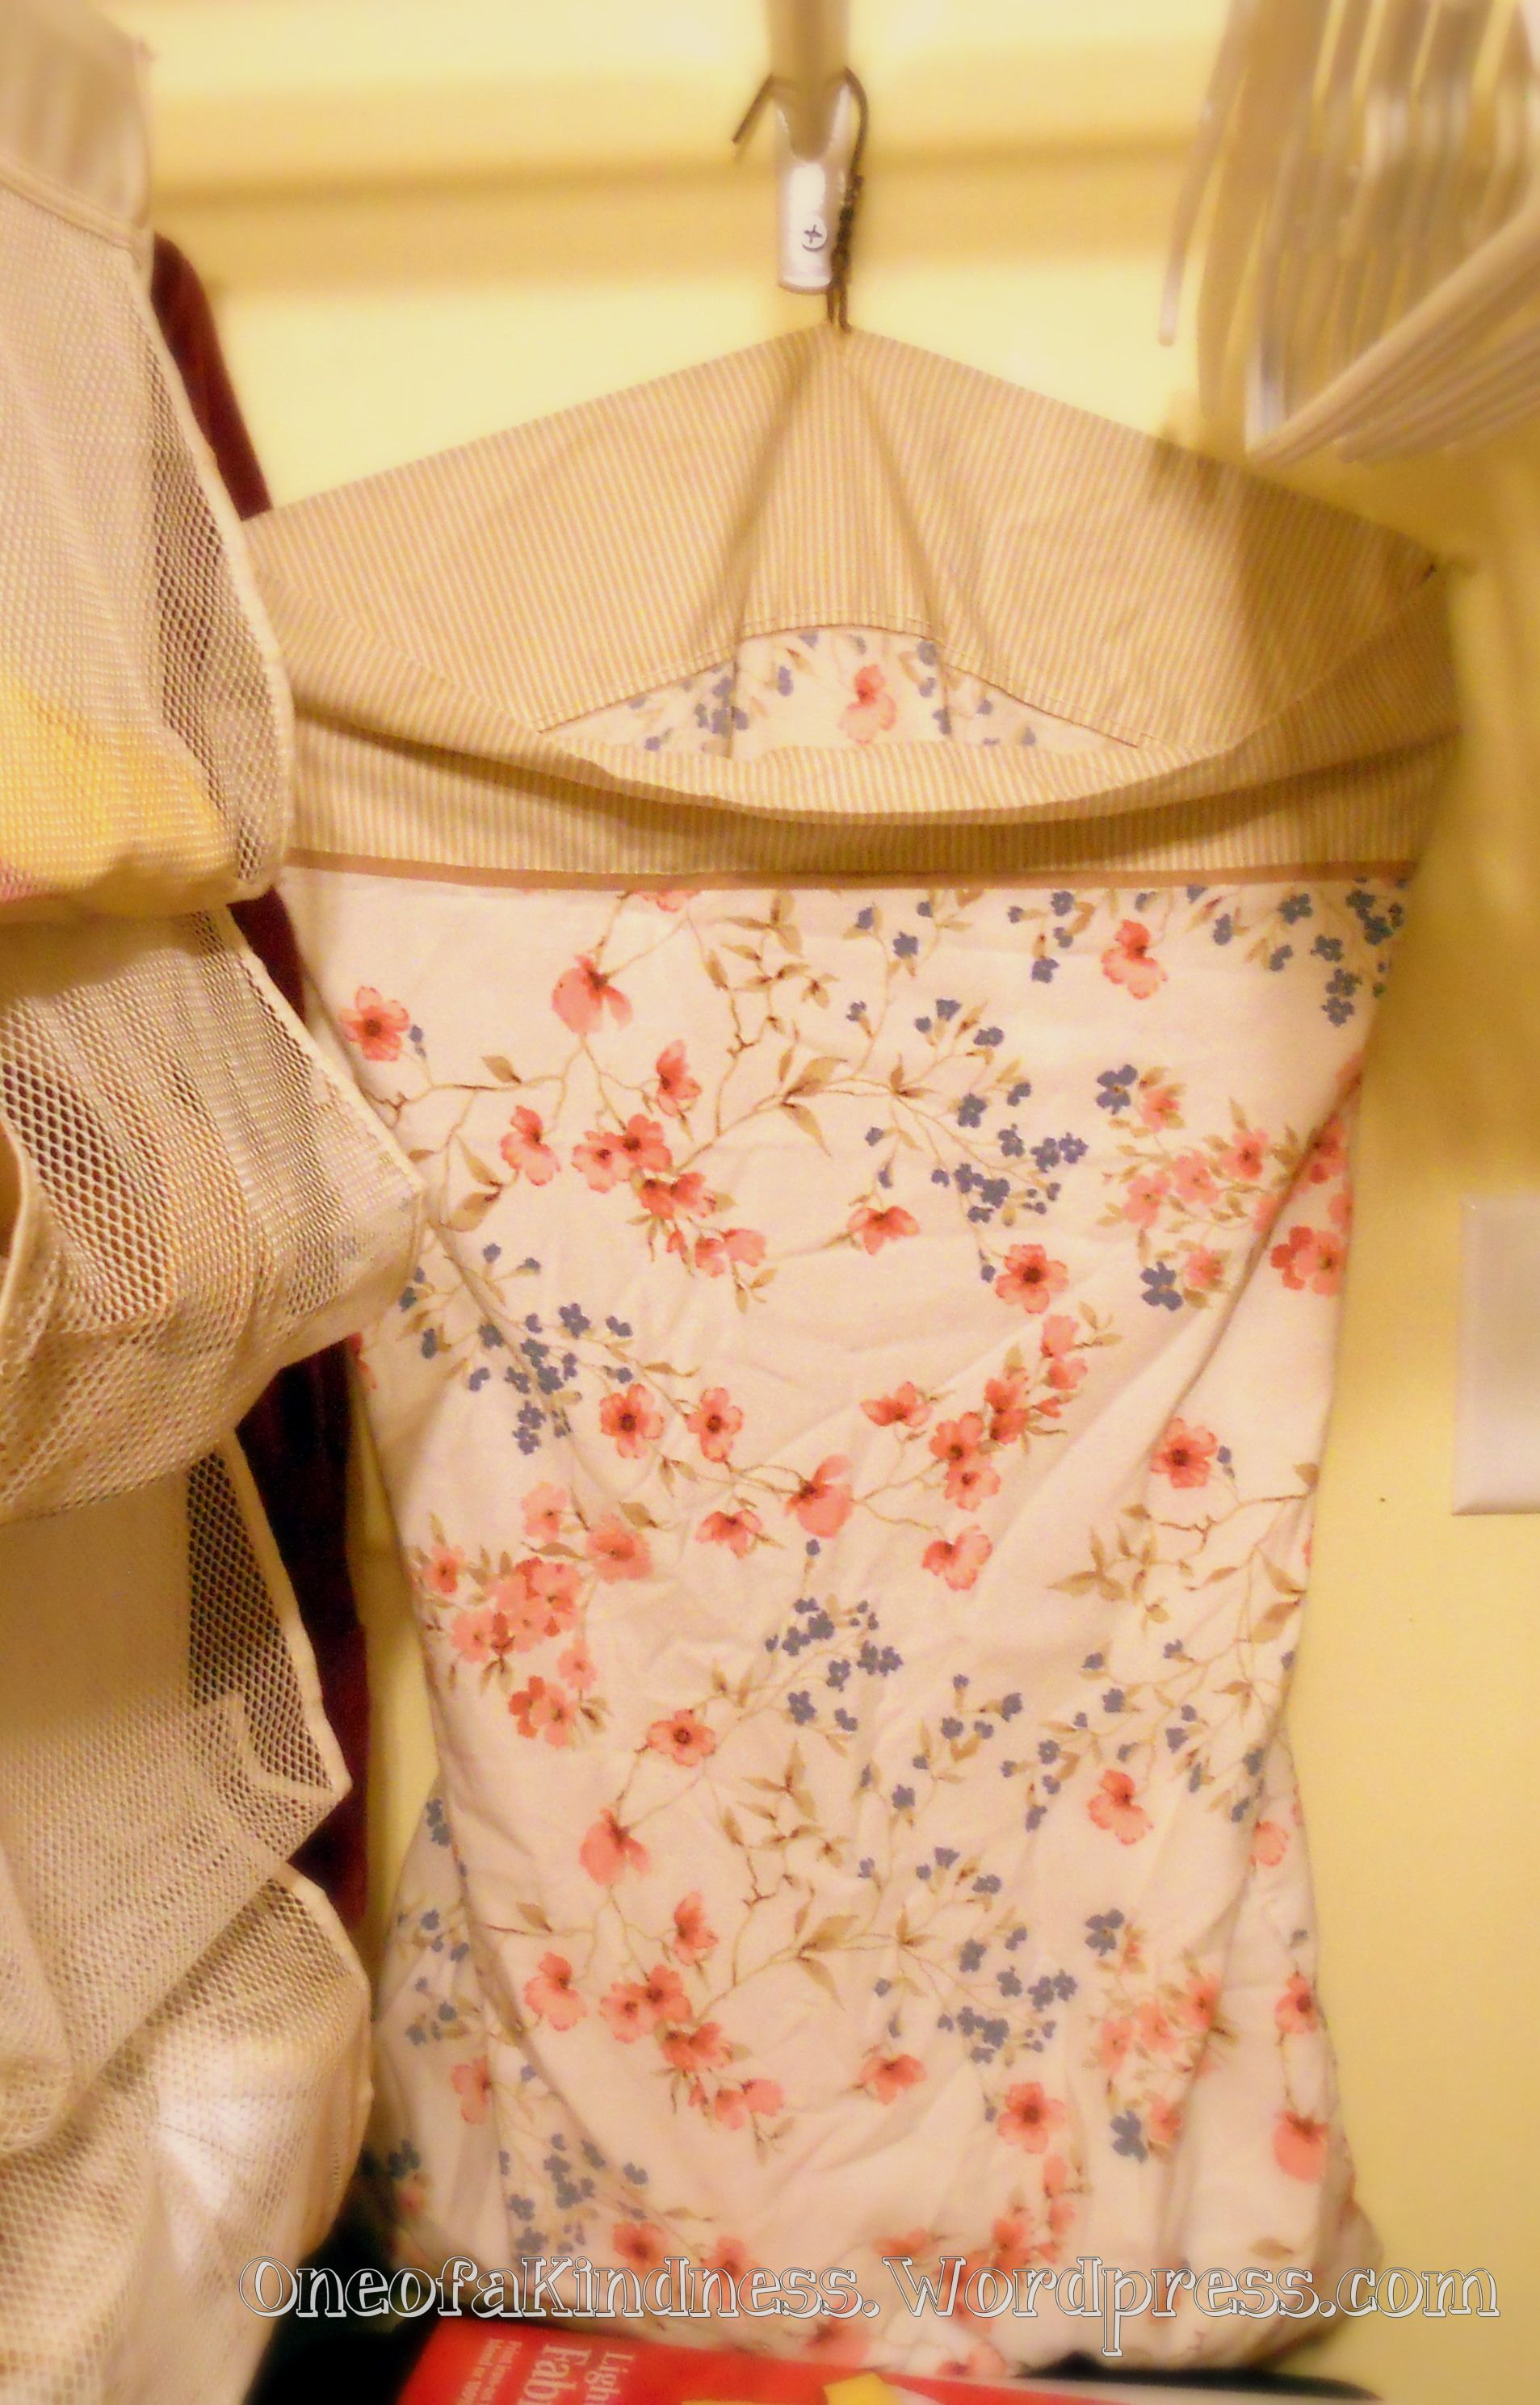 Diy Pillowcase Laundry Hamper: More From The Pinterest Files  Pillowcase Laundry Hamper   Hampers    ,